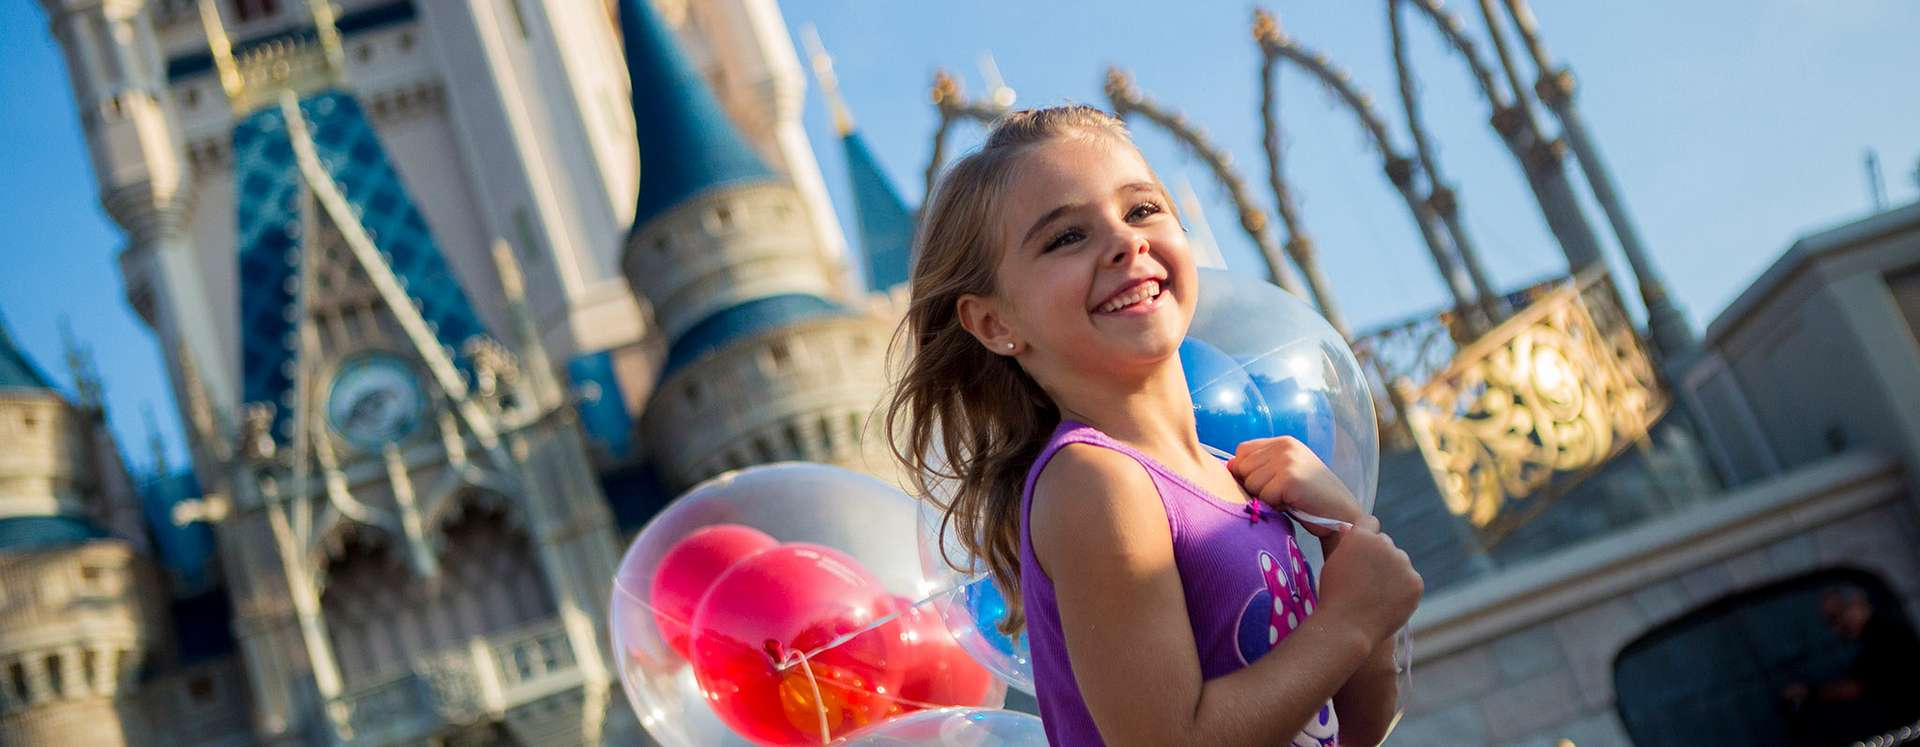 A young girl running with balloons with the castle in the background at Walt Disney World